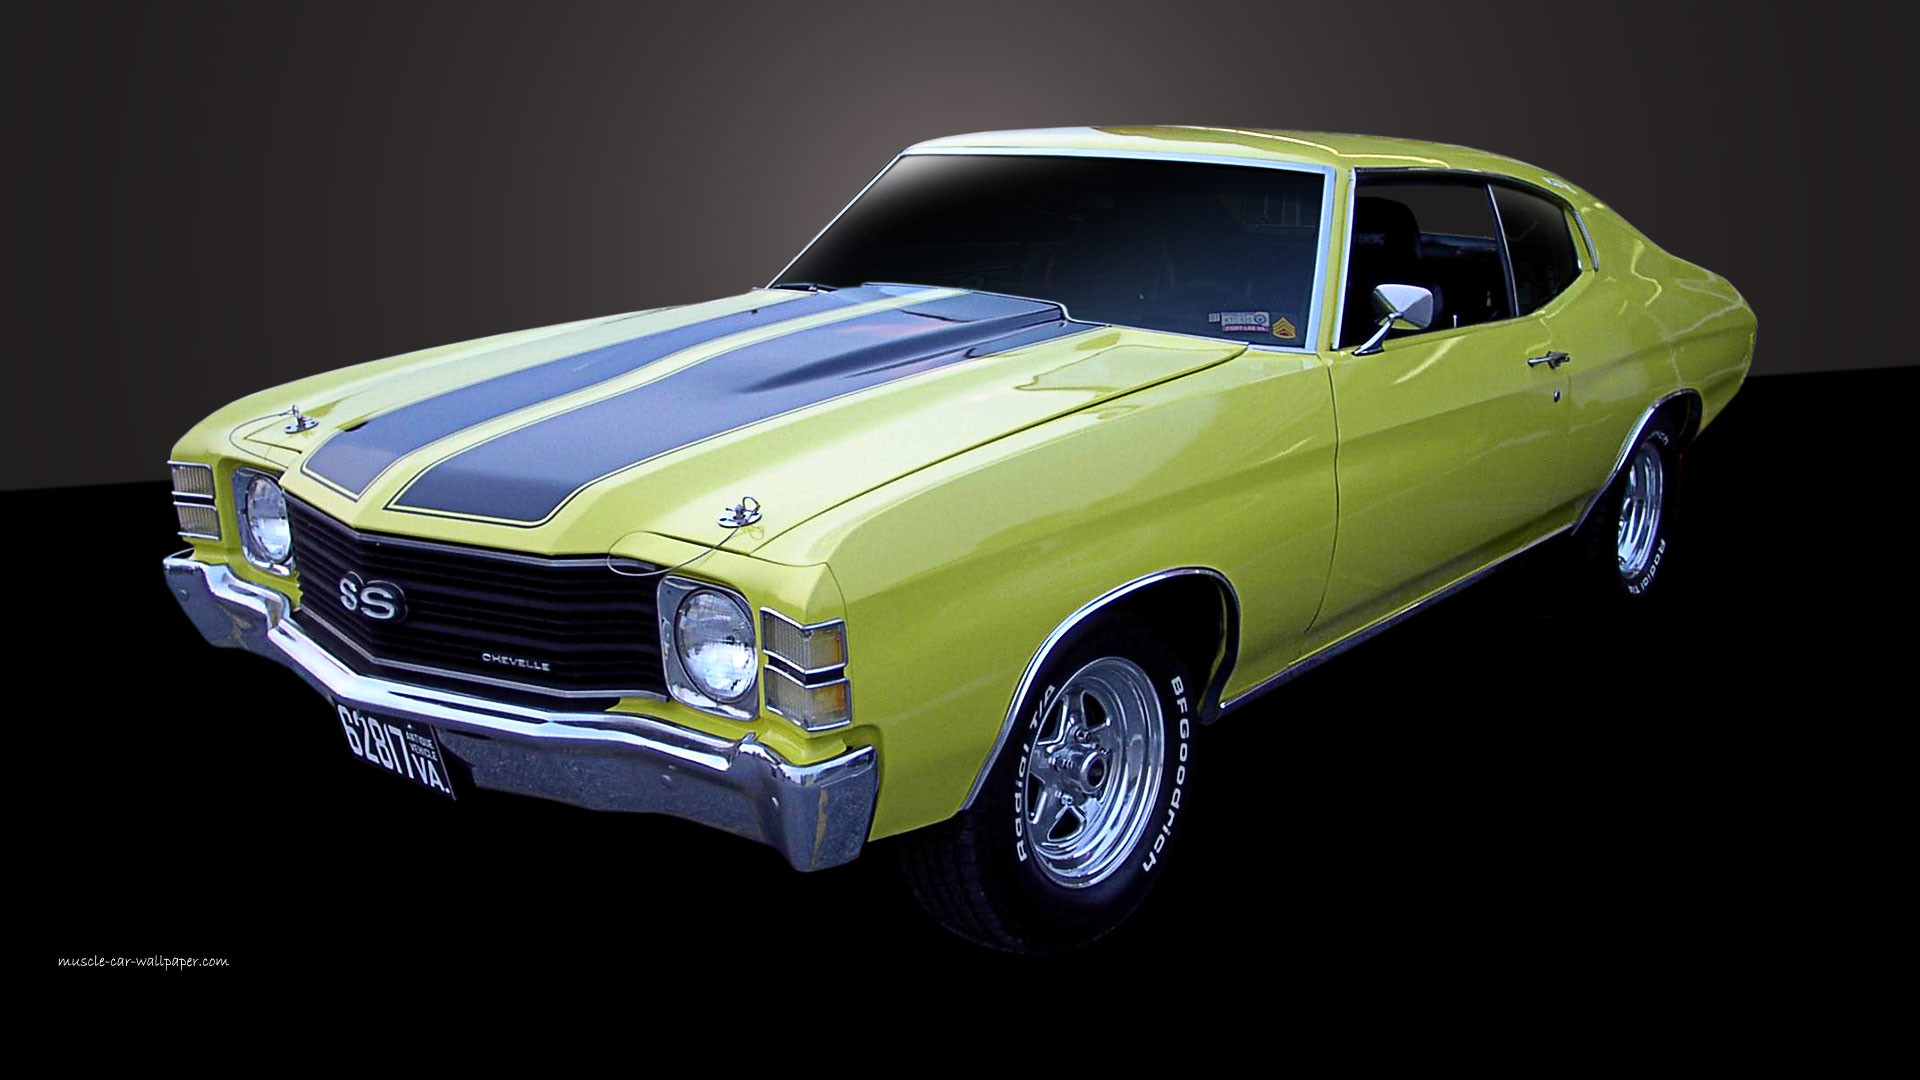 69 Chevelle Wallpaper 54 Images